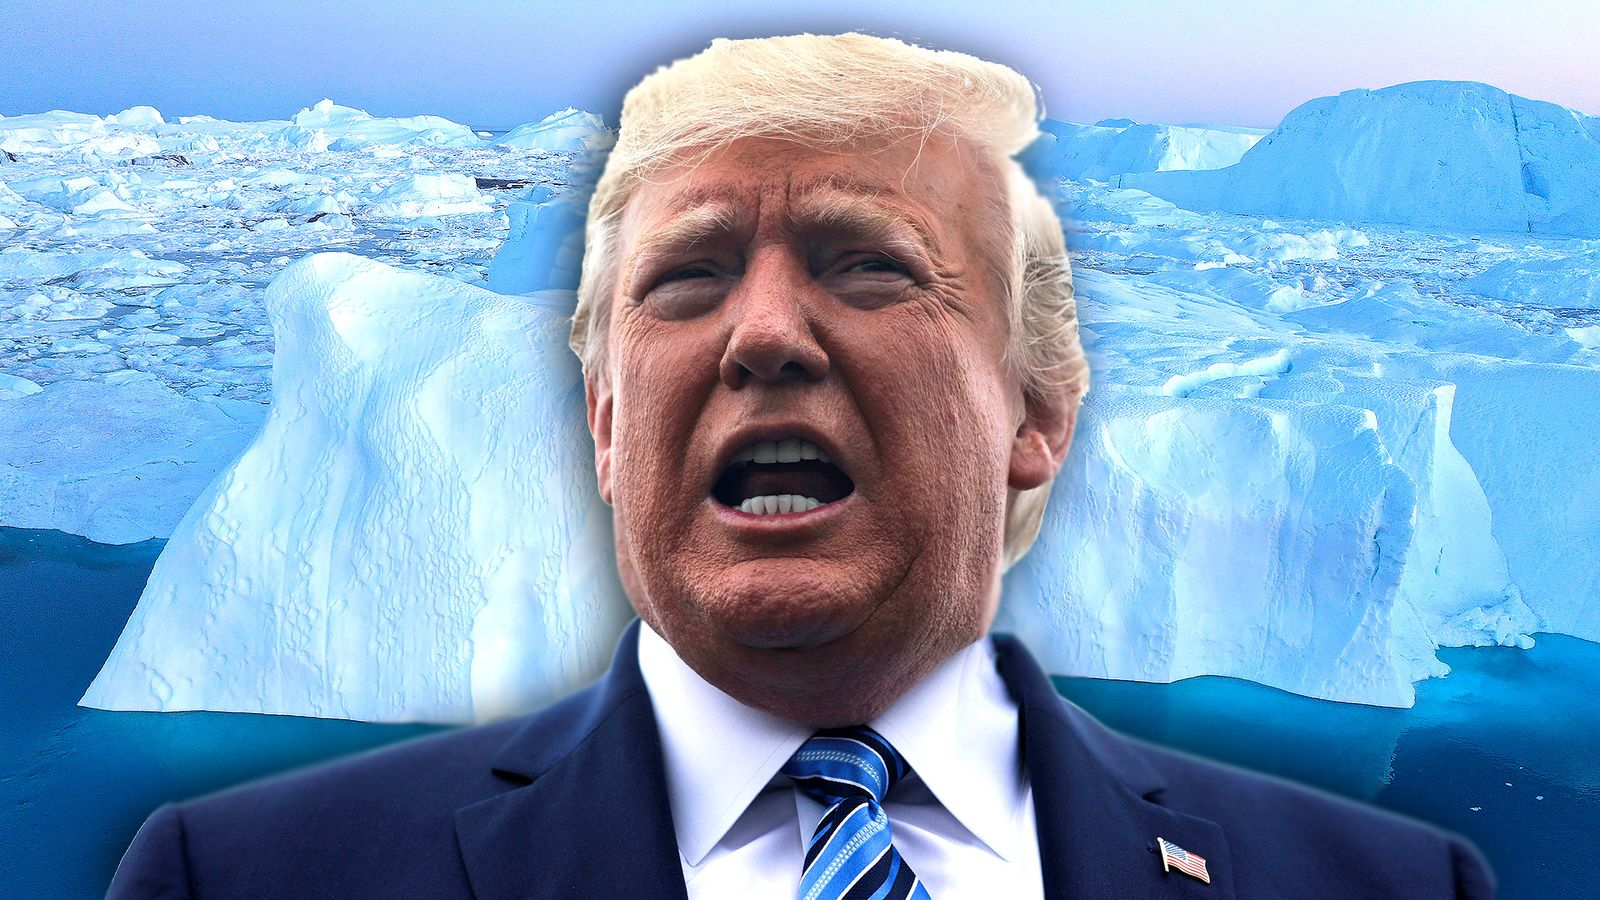 'Proof he has gone mad' - Trump ridiculed over plan to buy Greenland